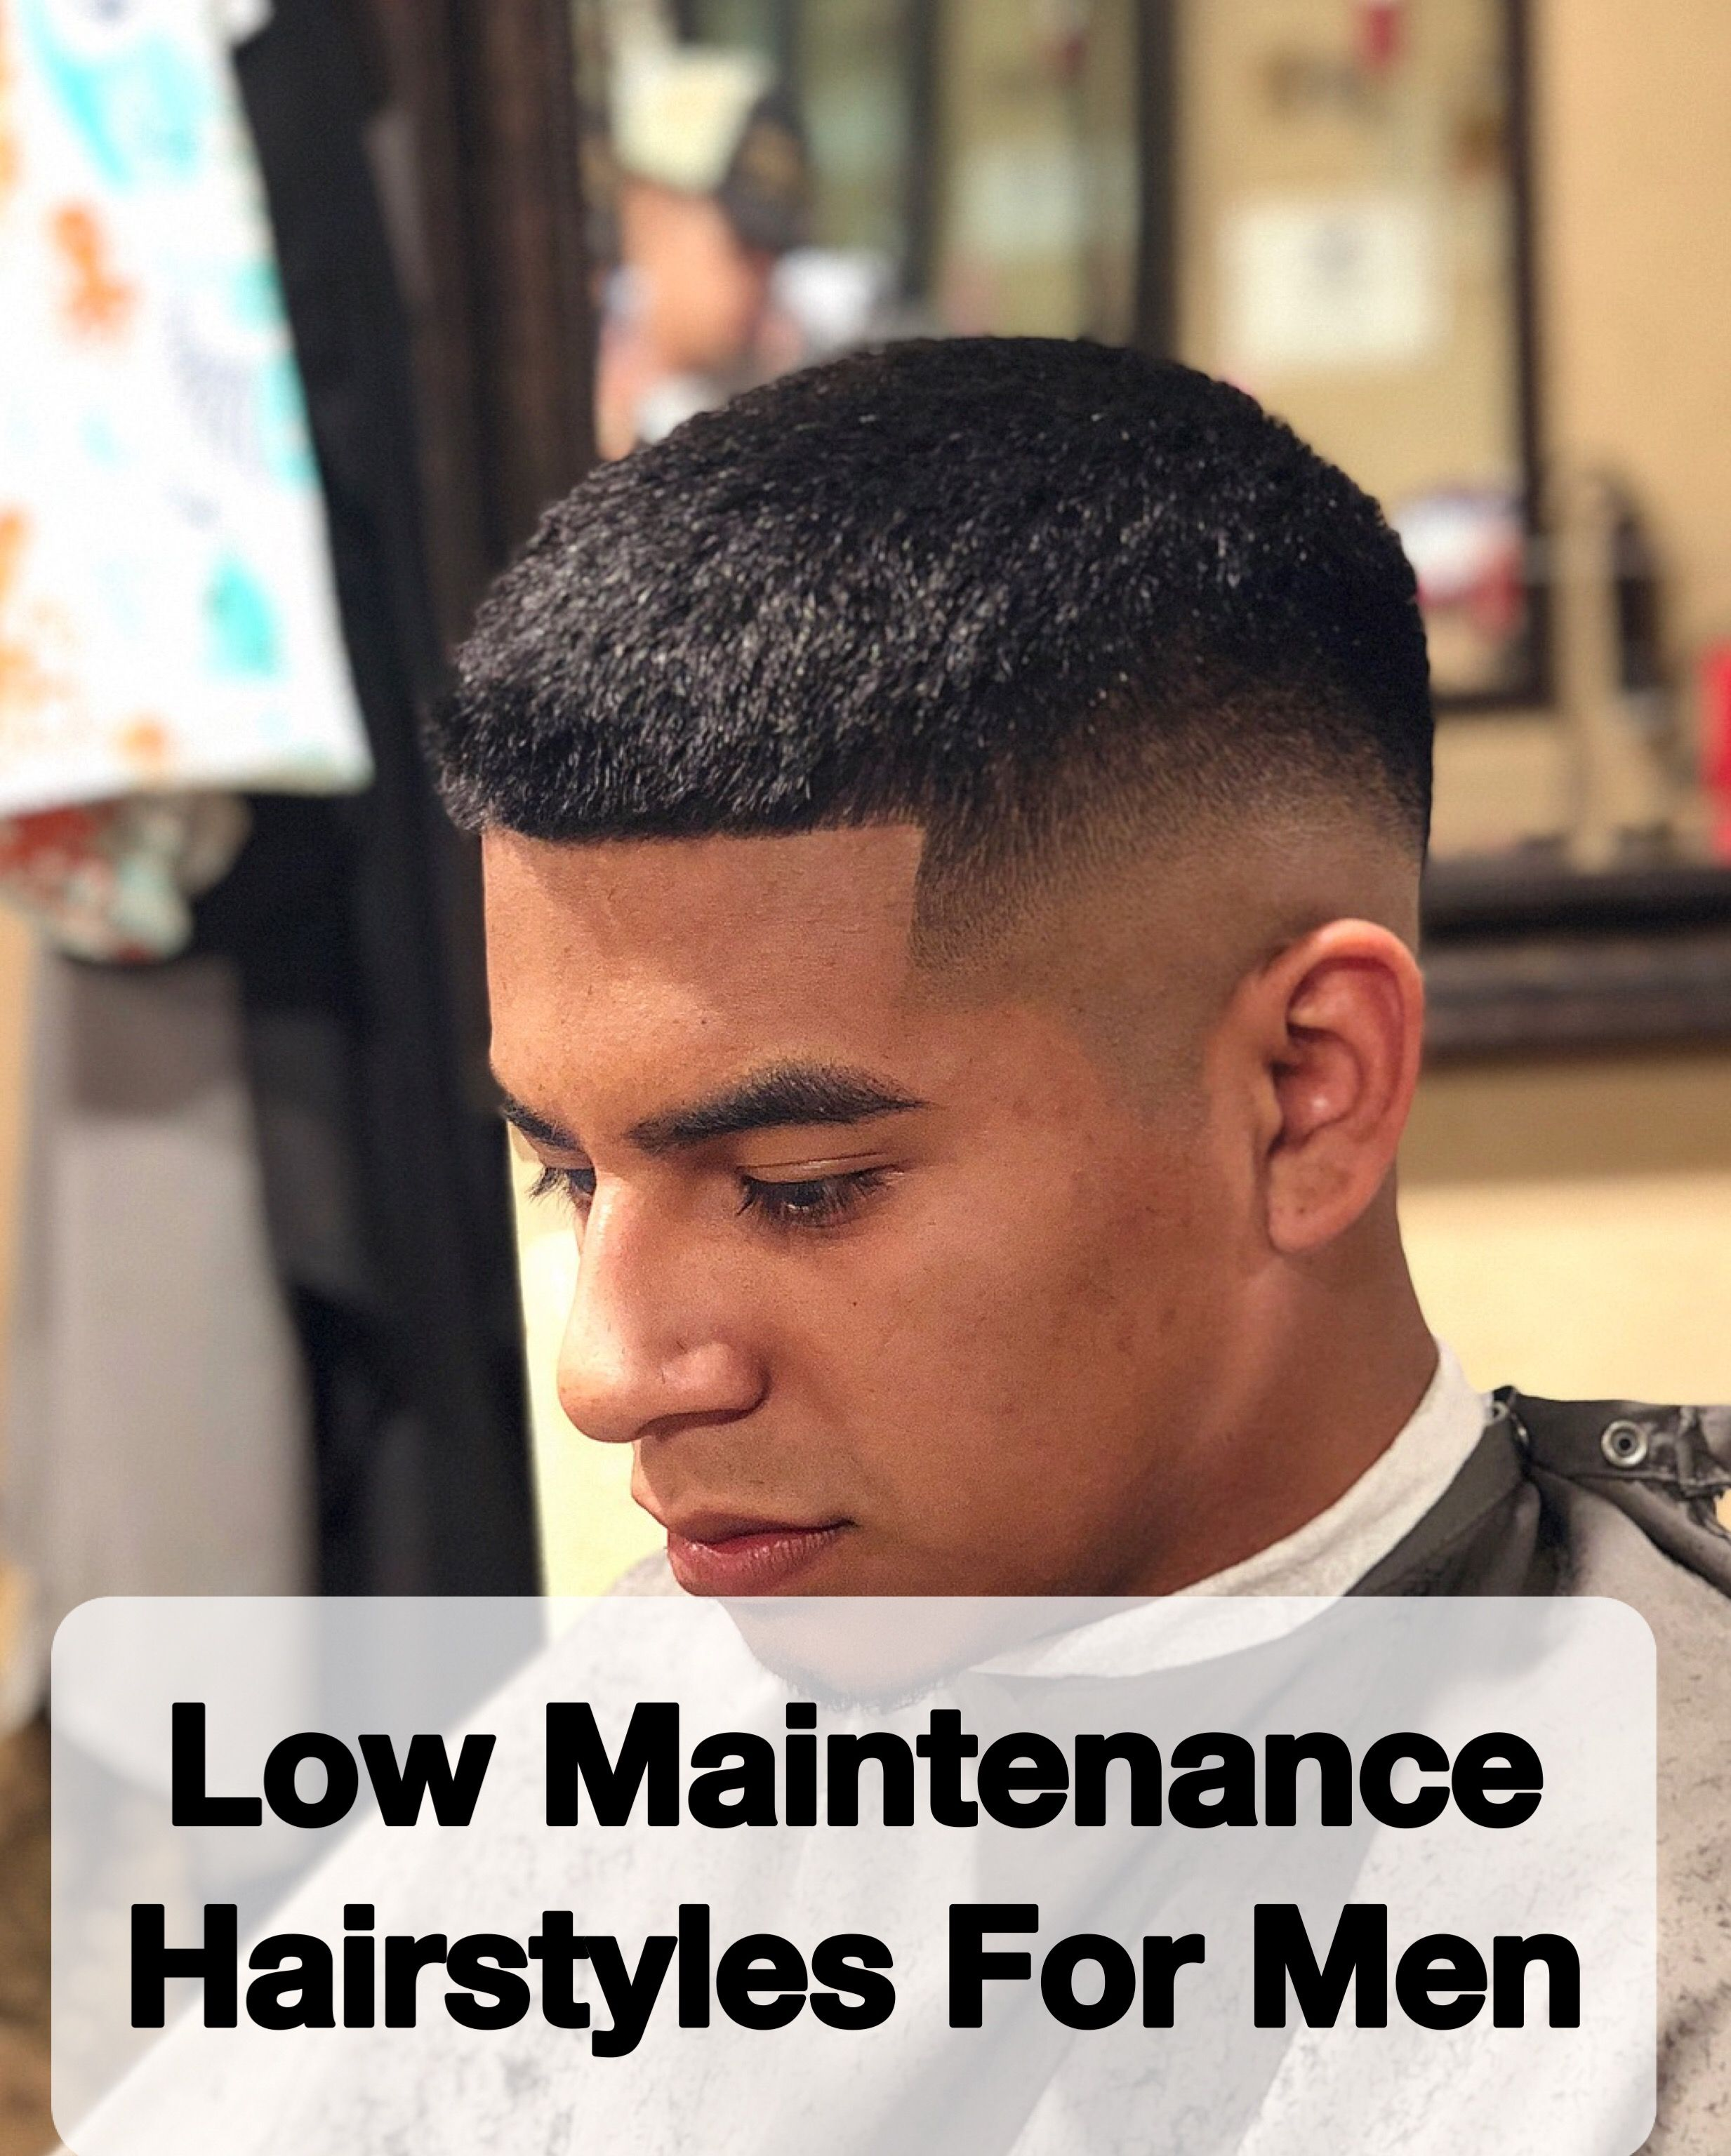 15 Top Low Maintenance Hairstyles For Men Men S Hairstyles Faded Hair Mens Haircuts Fade Mens Taper Fade Haircut